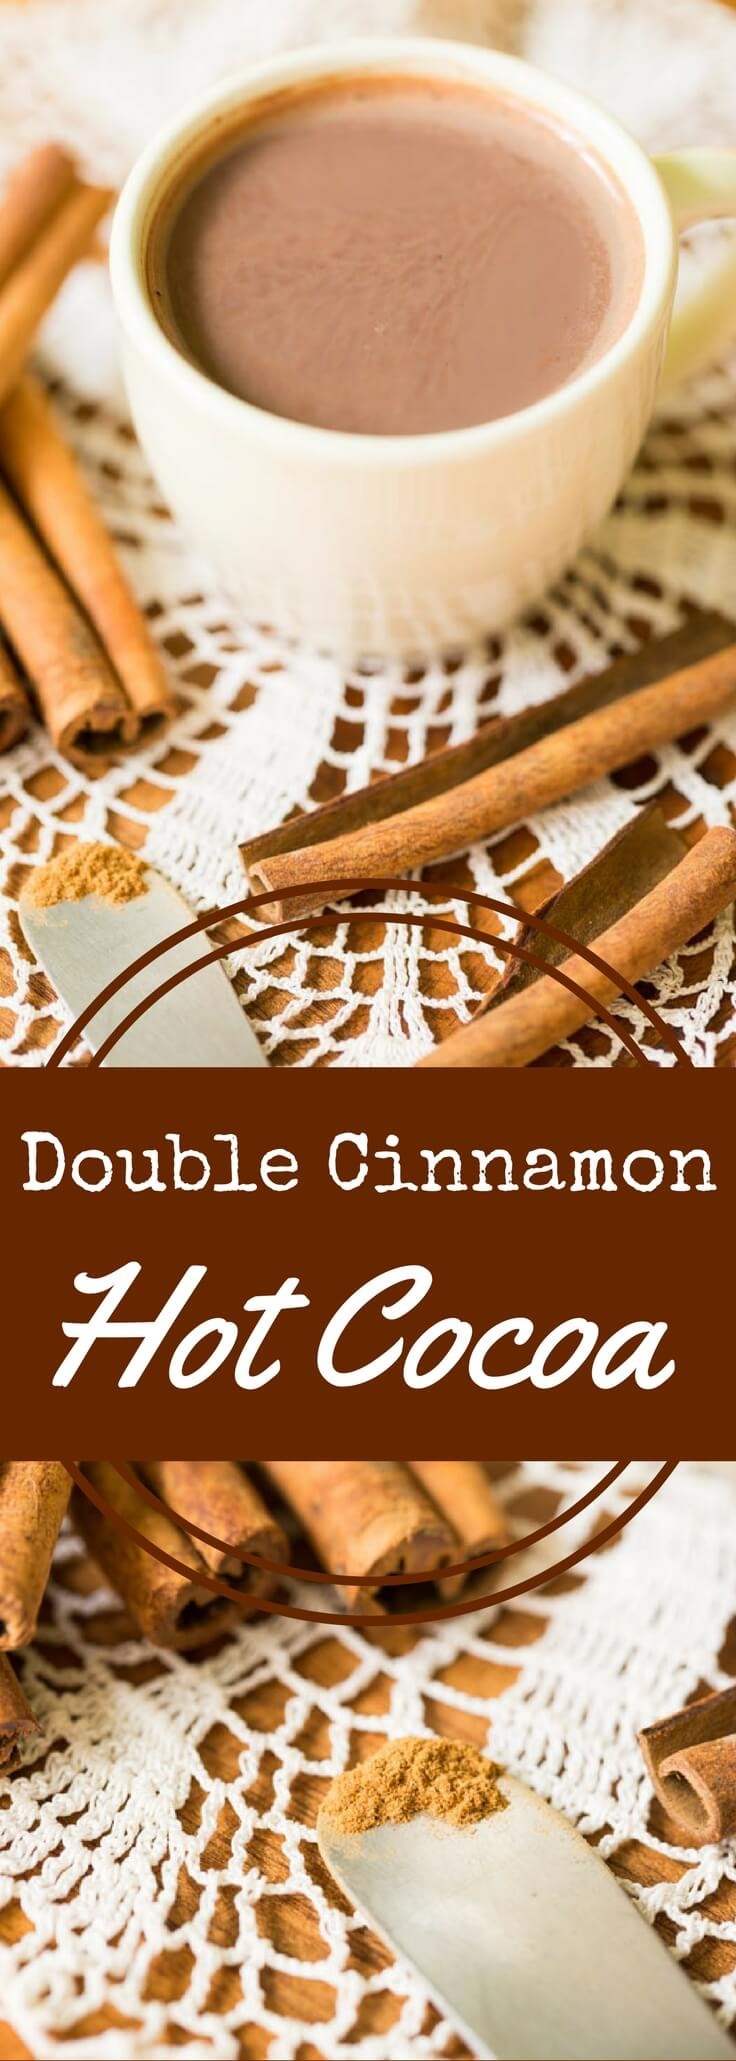 Two kinds of cinnamon plus cocoa equals the best cinnamon hot chocolate (or cinnamon hot cocoa) you've ever had. Rich, complex, and satisfying.